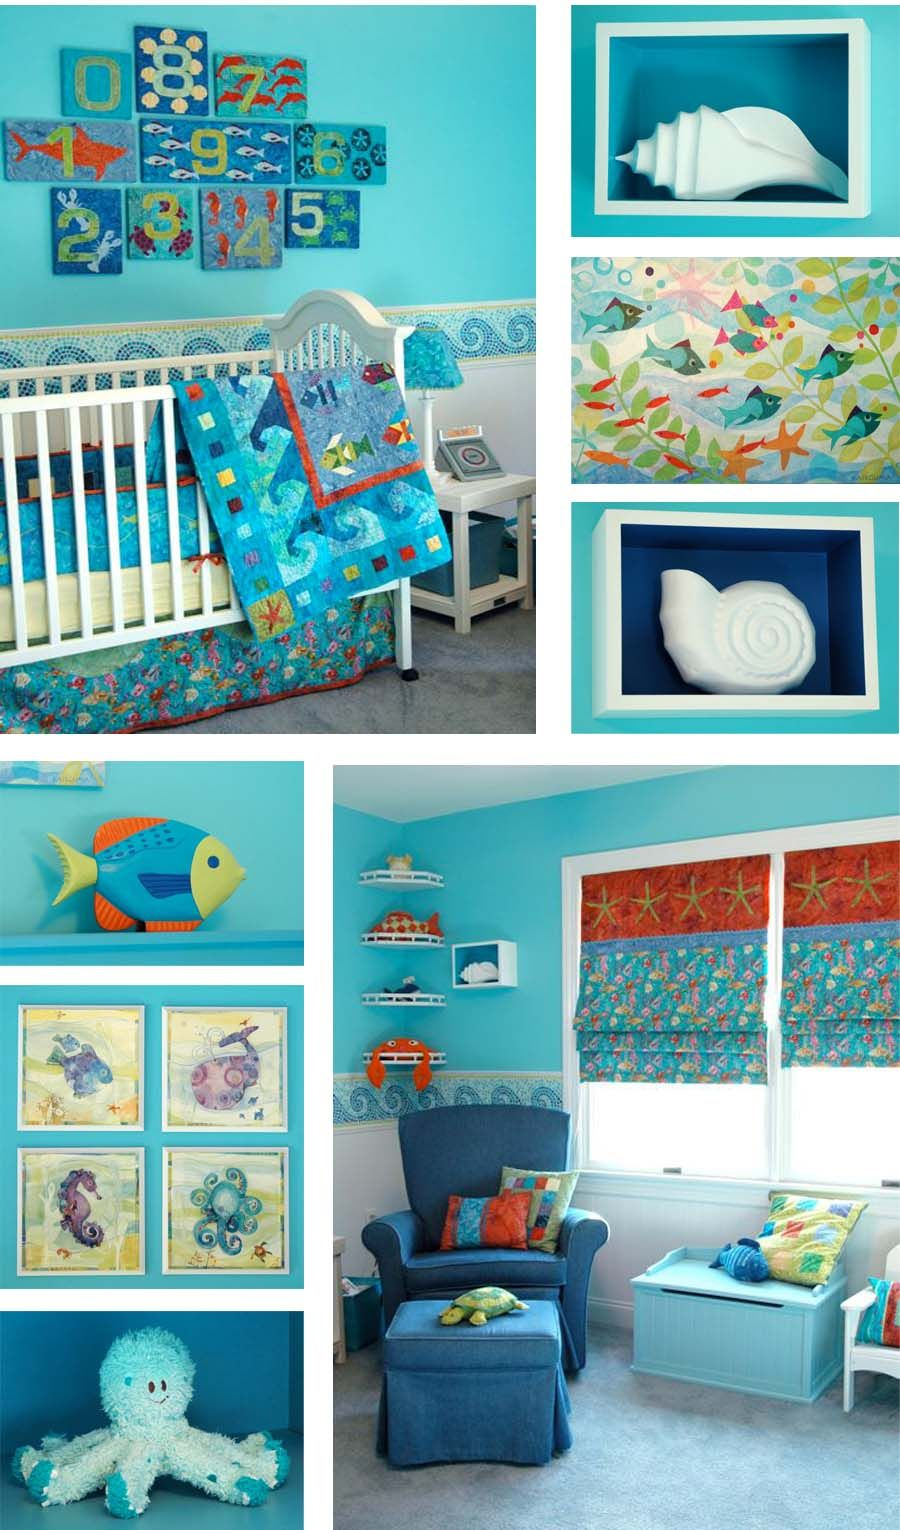 138: Under The Sea Nursery | Ocean Baby Rooms, Baby Room Themes, Baby Nursery Themes